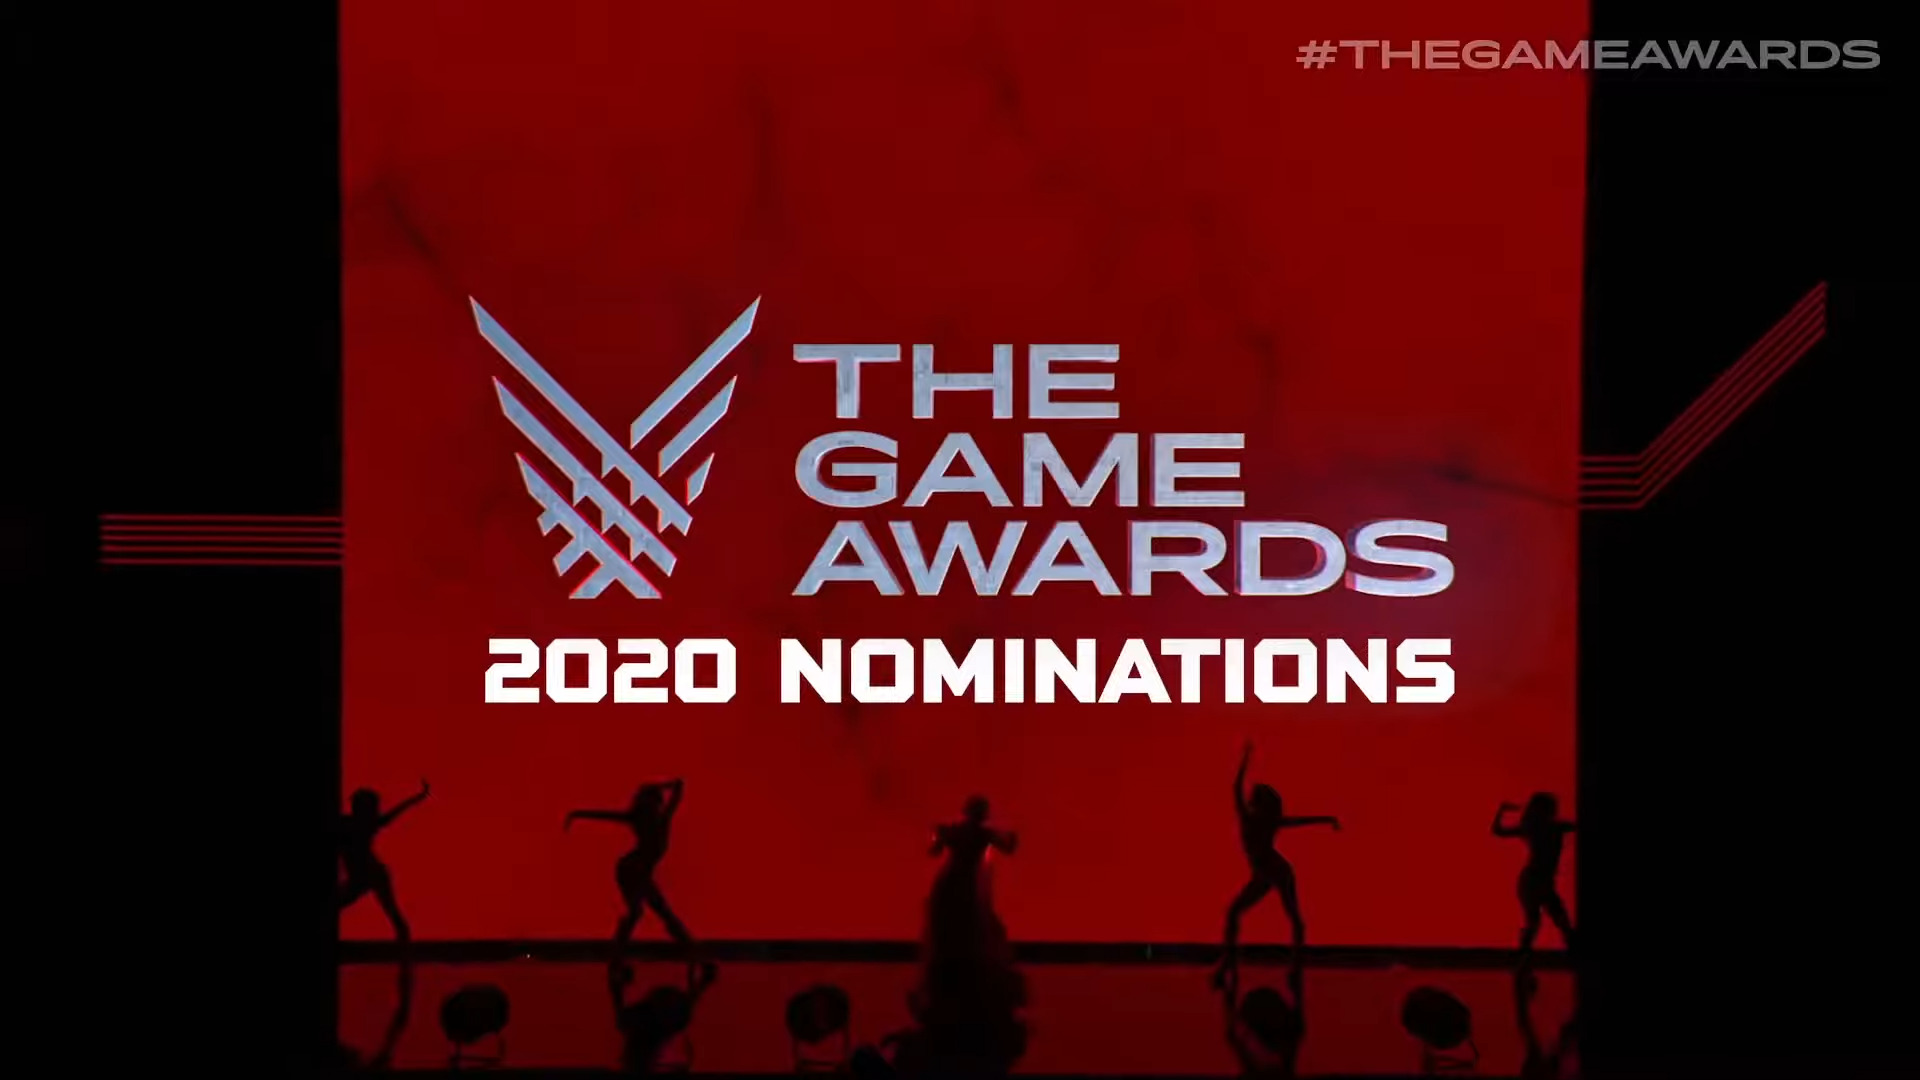 New Trailer For The Game Awards Seeks To Build Hype For The Annual Event With Linkin Park Music